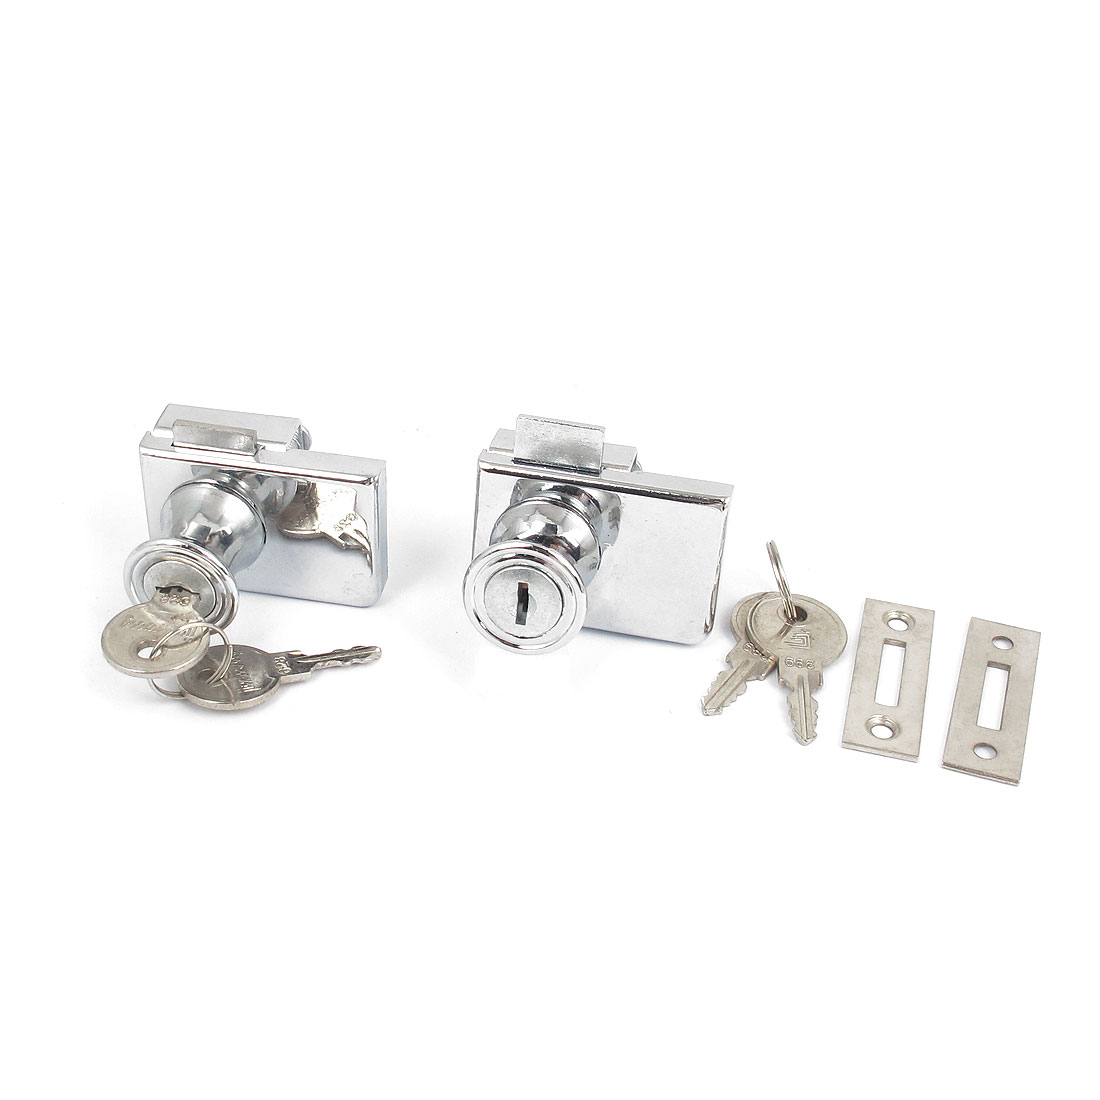 Silver Tone Office Shop Showcase Glass Door Security Lock Fitting 10mm Thickness 2pcs w Keys